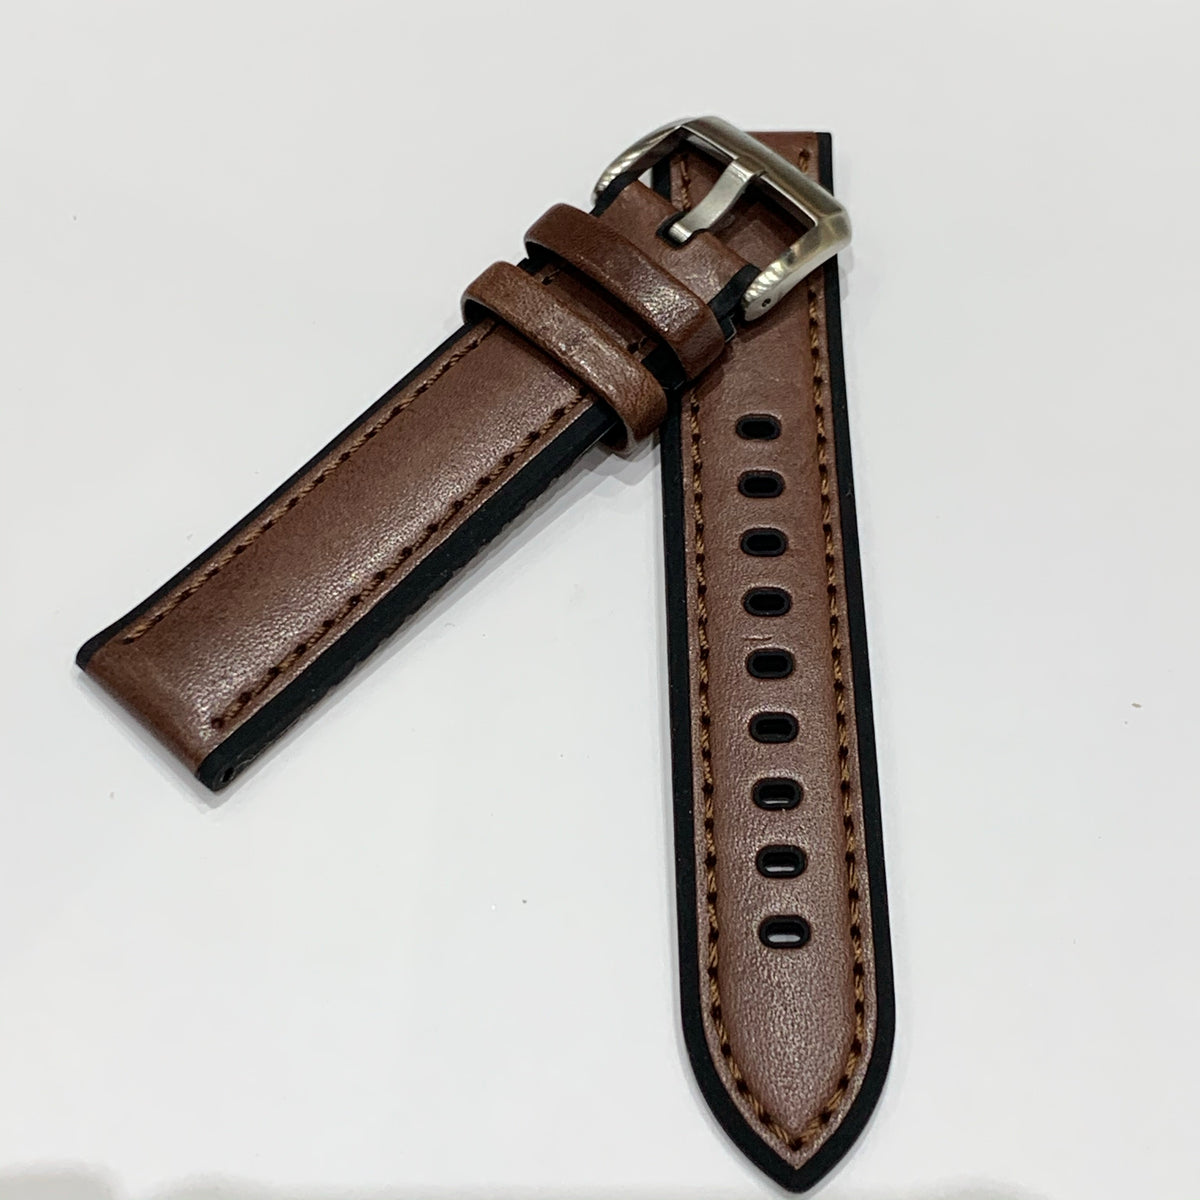 Alpine Watchstrap - Smooth Leather w. Silicone lining